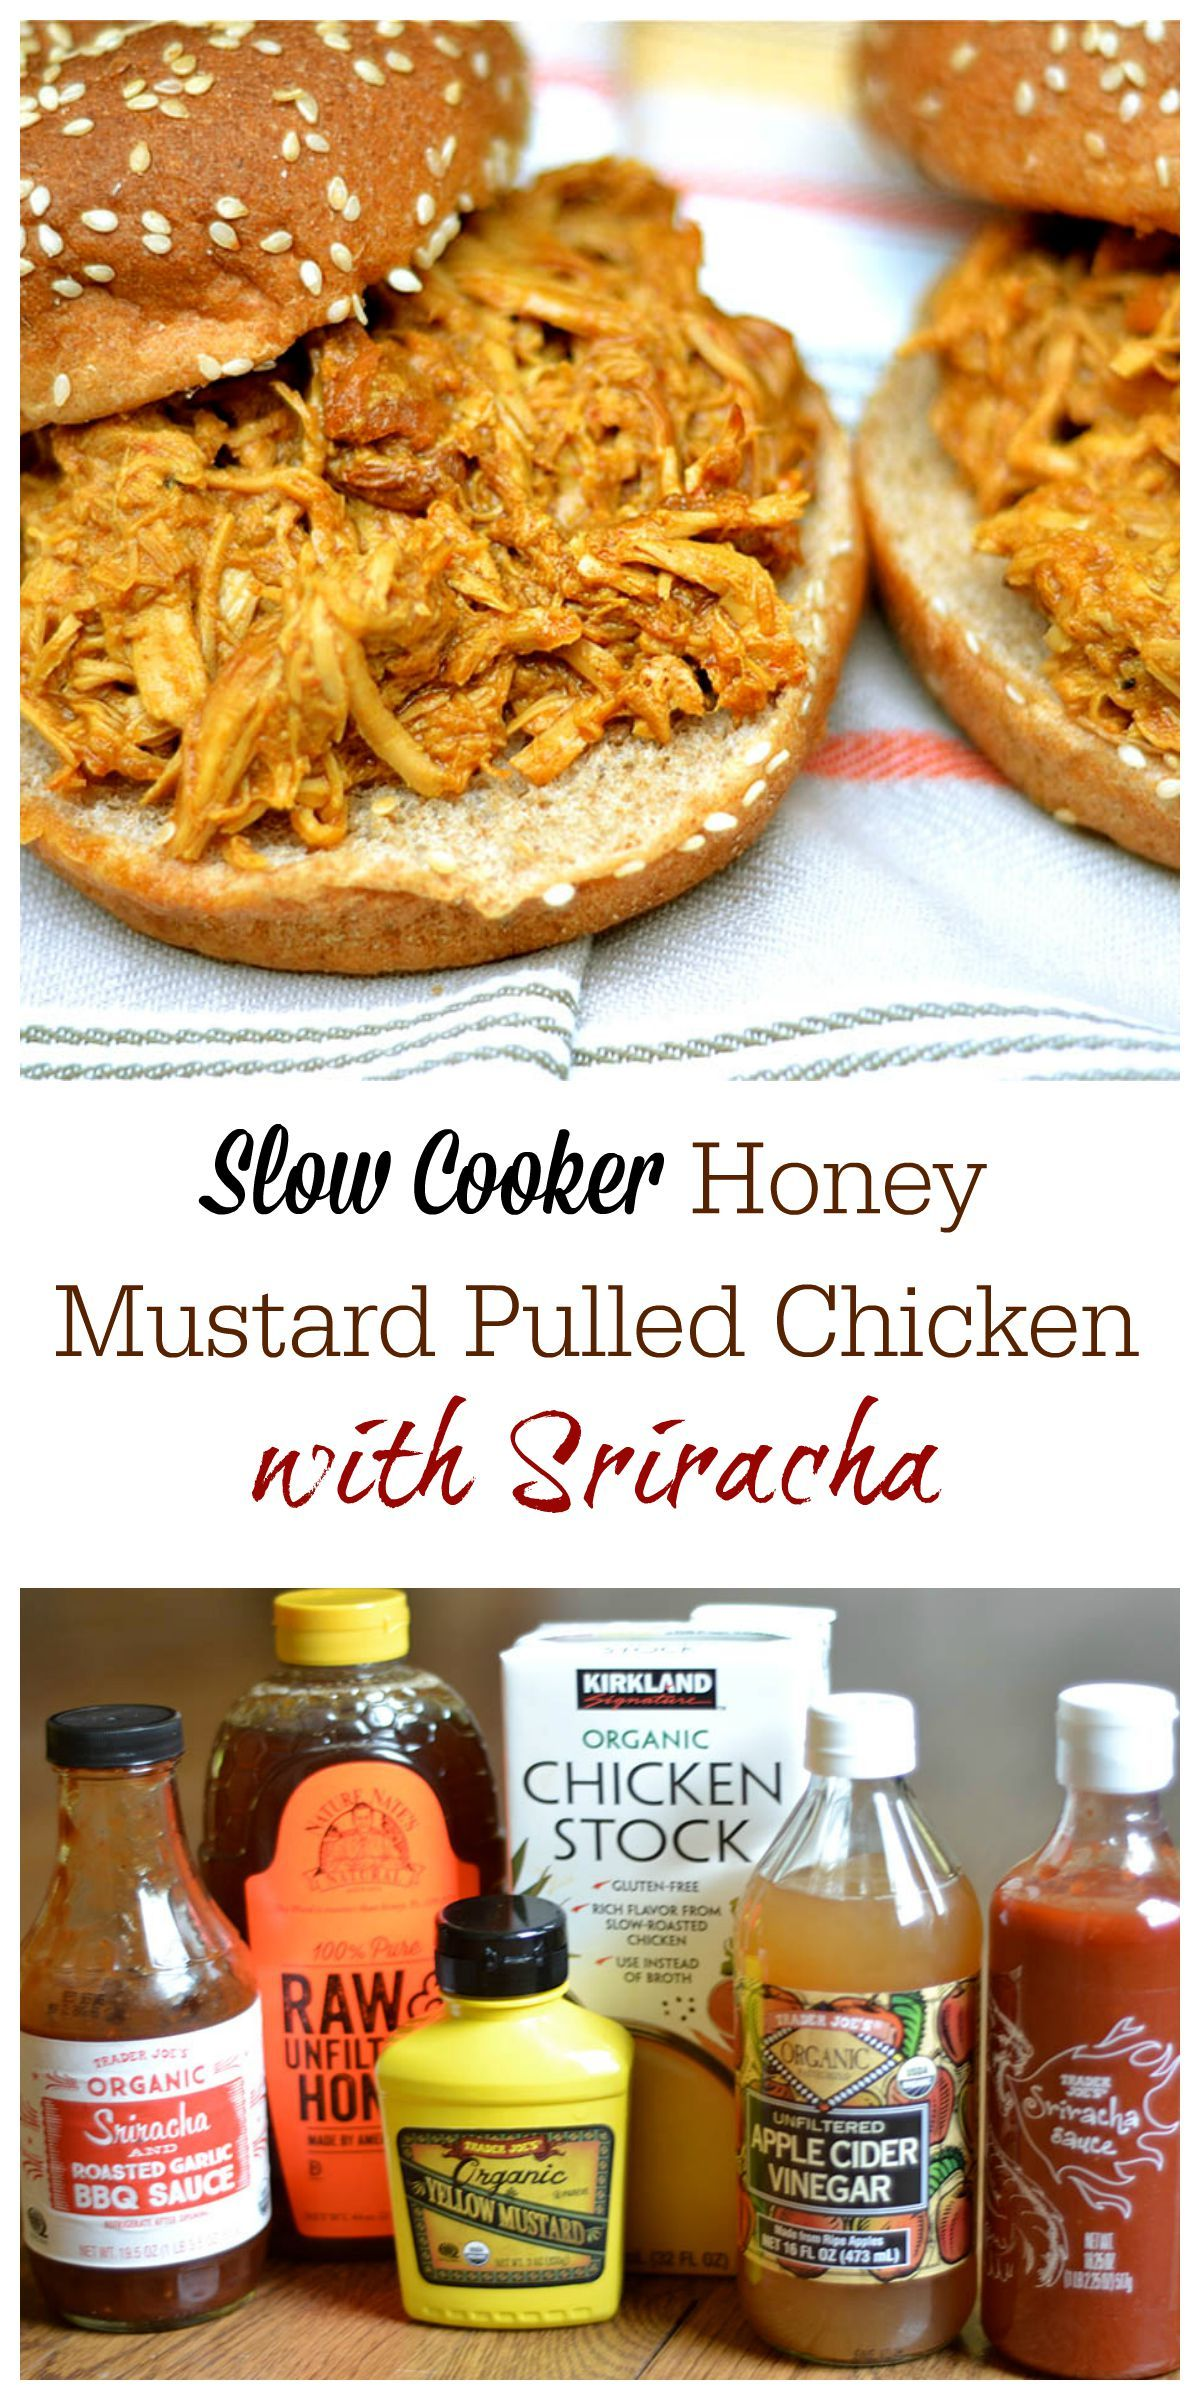 Slow Cooker Honey Mustard Pulled Chicken With Sriracha